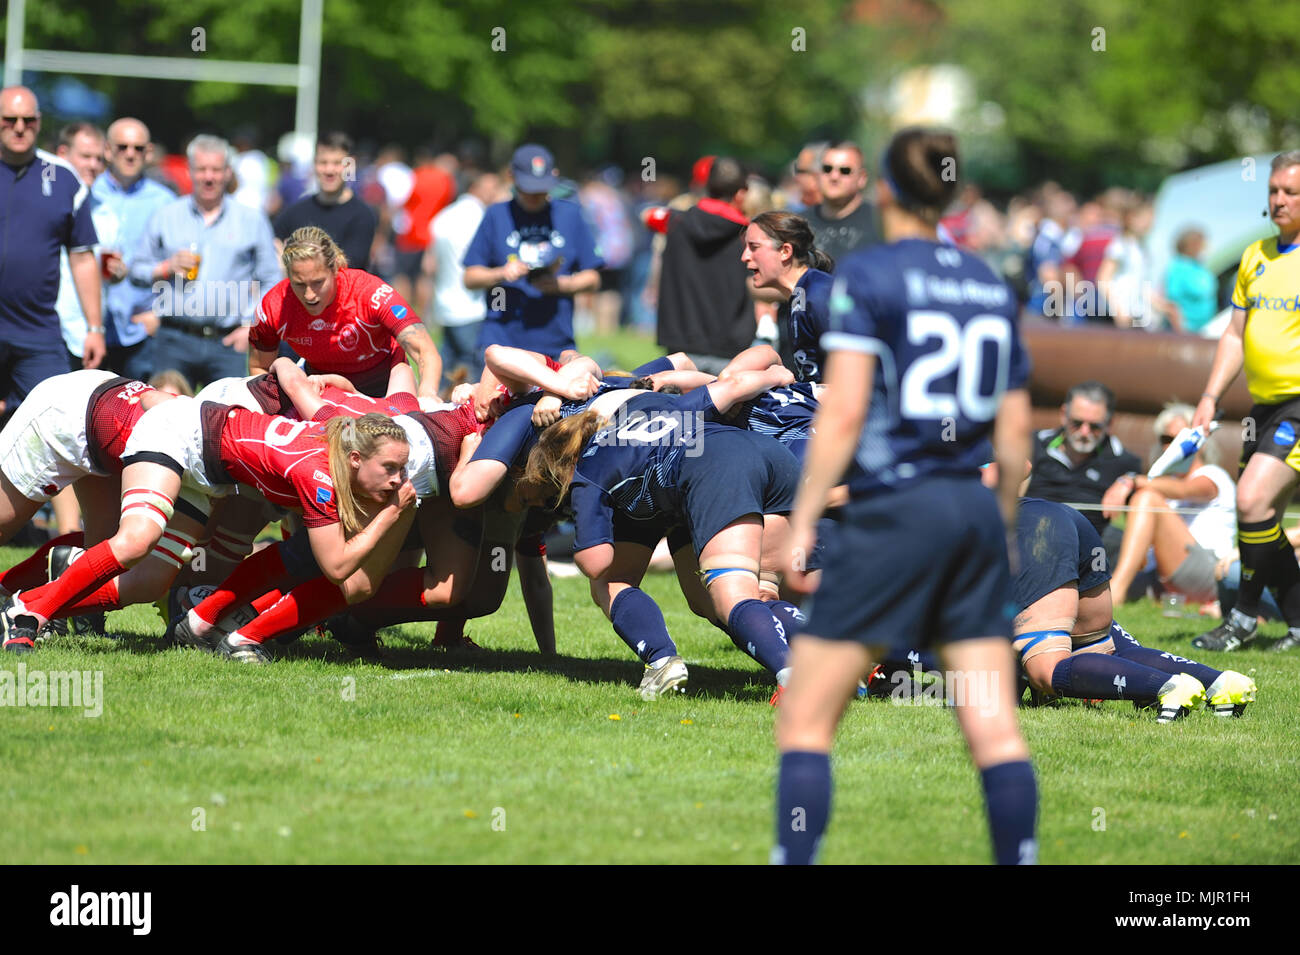 London, UK, 5 May 2018. British Army and Royal Navy players locked into a scrum during the annual women's annual inter-service competition match at Kneller Hall, London, UK.  The match was won by the British Army, 72-3.    In 2003 a Women's Inter-Service Competition was introduced to run alongside the men's competition. The inaugural competition was won by the Army and since its inception they'v Credit: Michael Preston/Alamy Live News - Stock Image